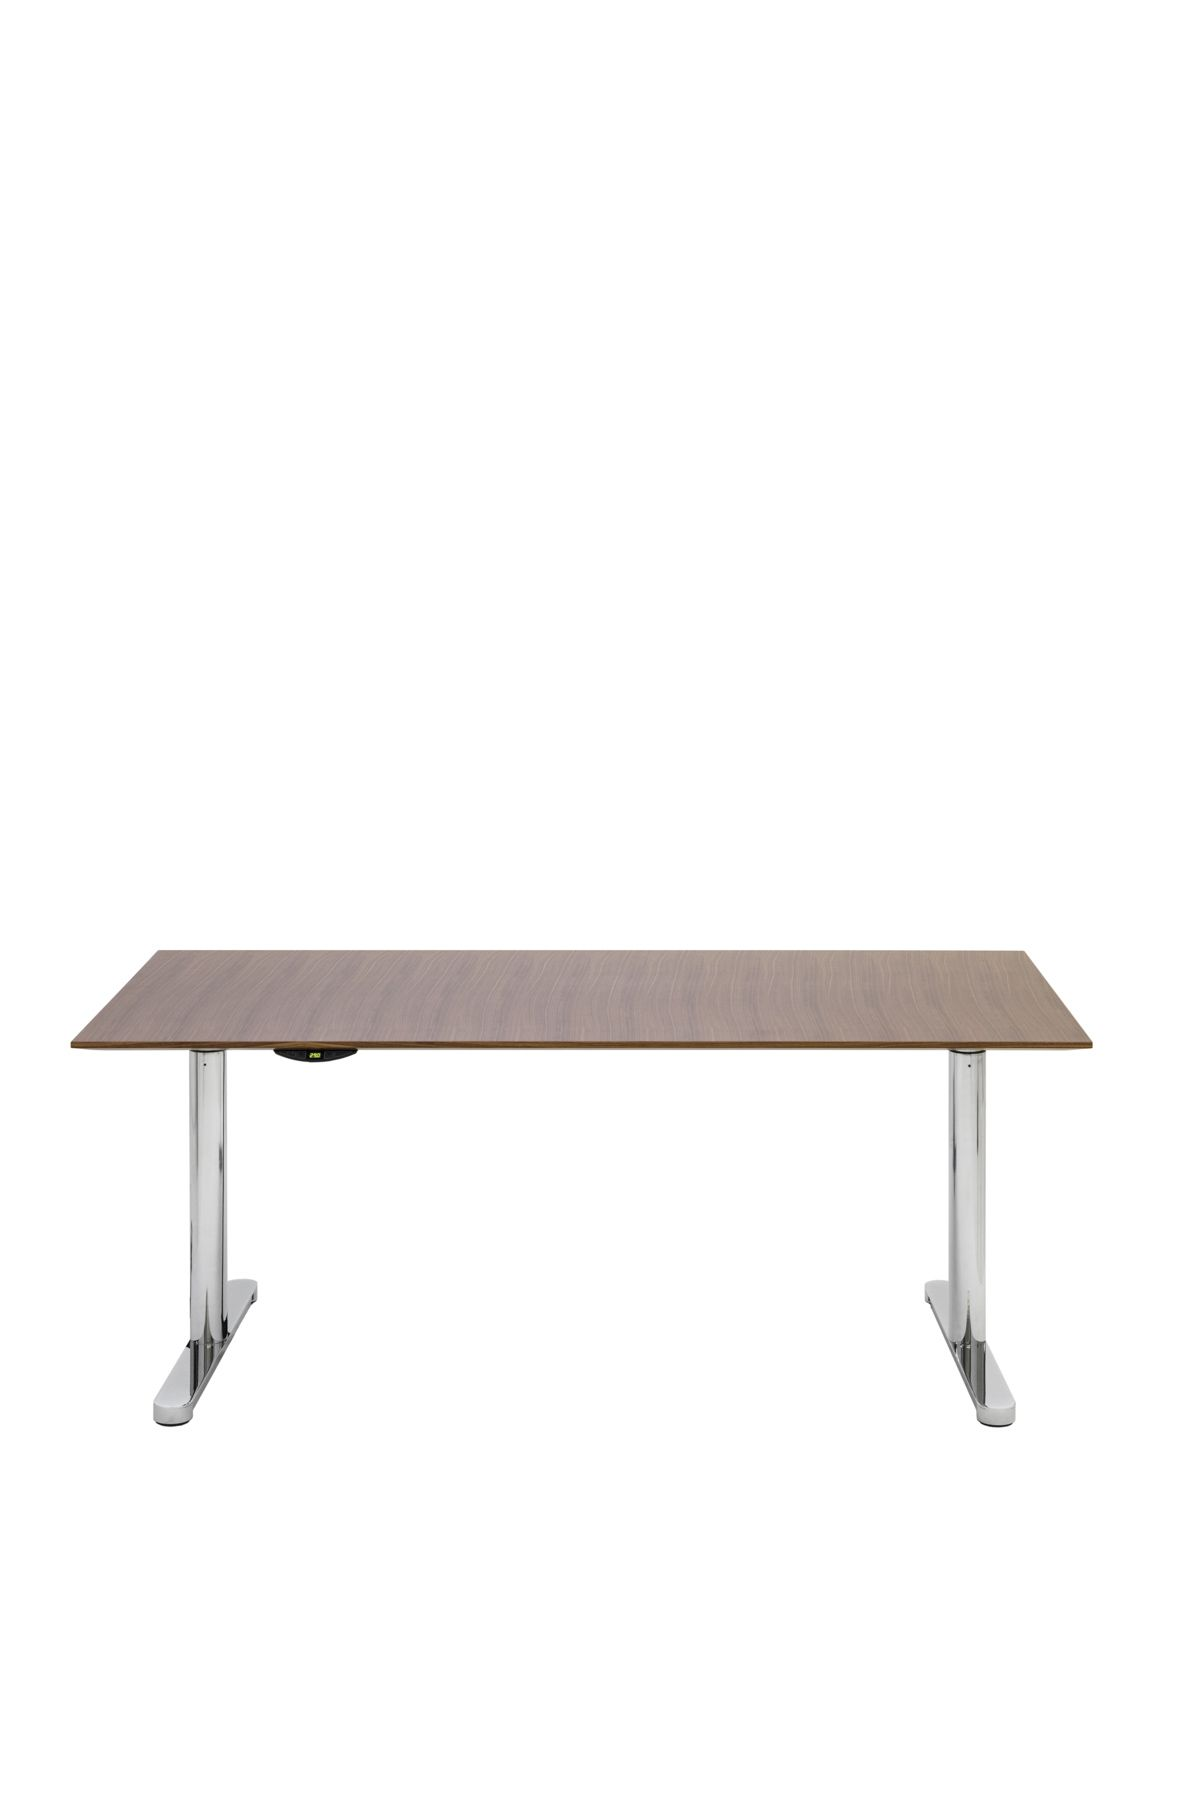 travis height adjustable conference table design by wiege